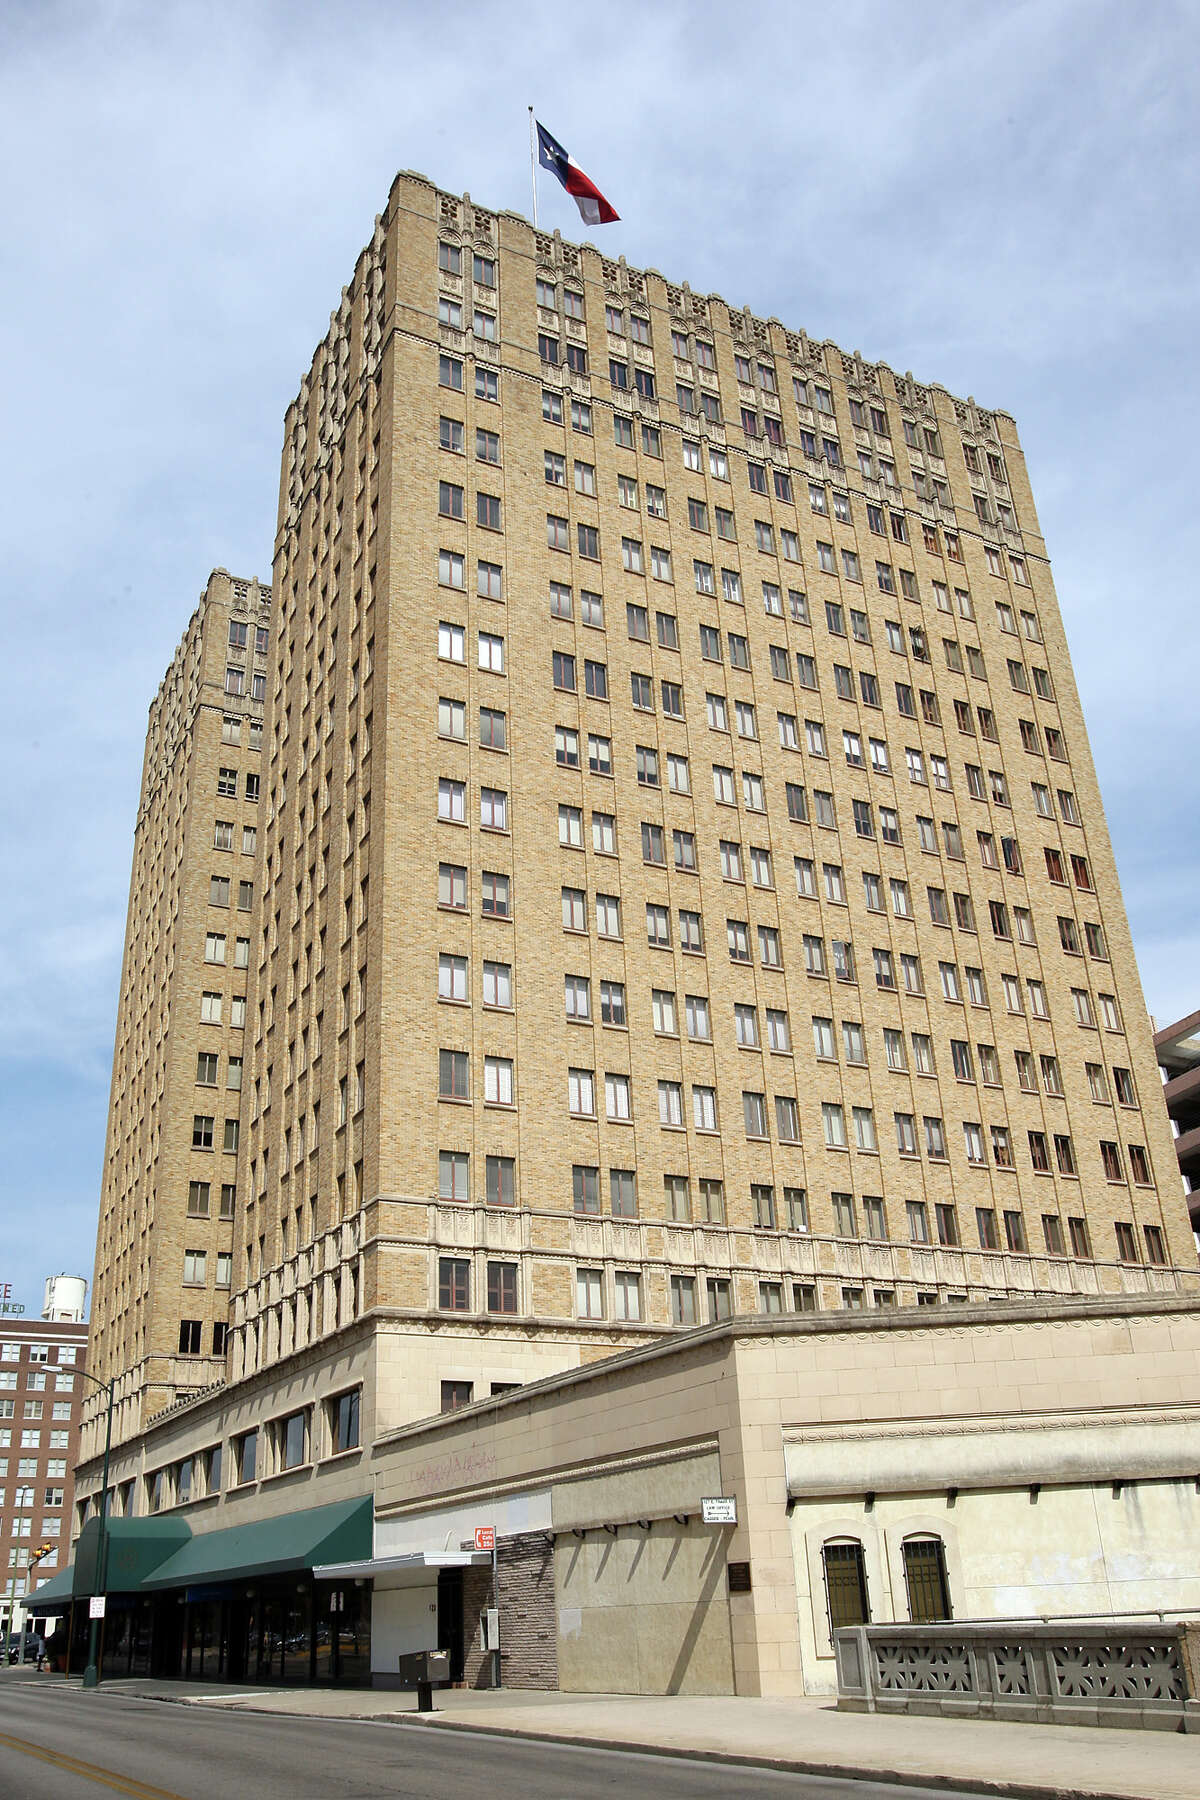 Views of the Milam Building at 115 East Travis for Cityscape, Thursday, May 3, 2012.